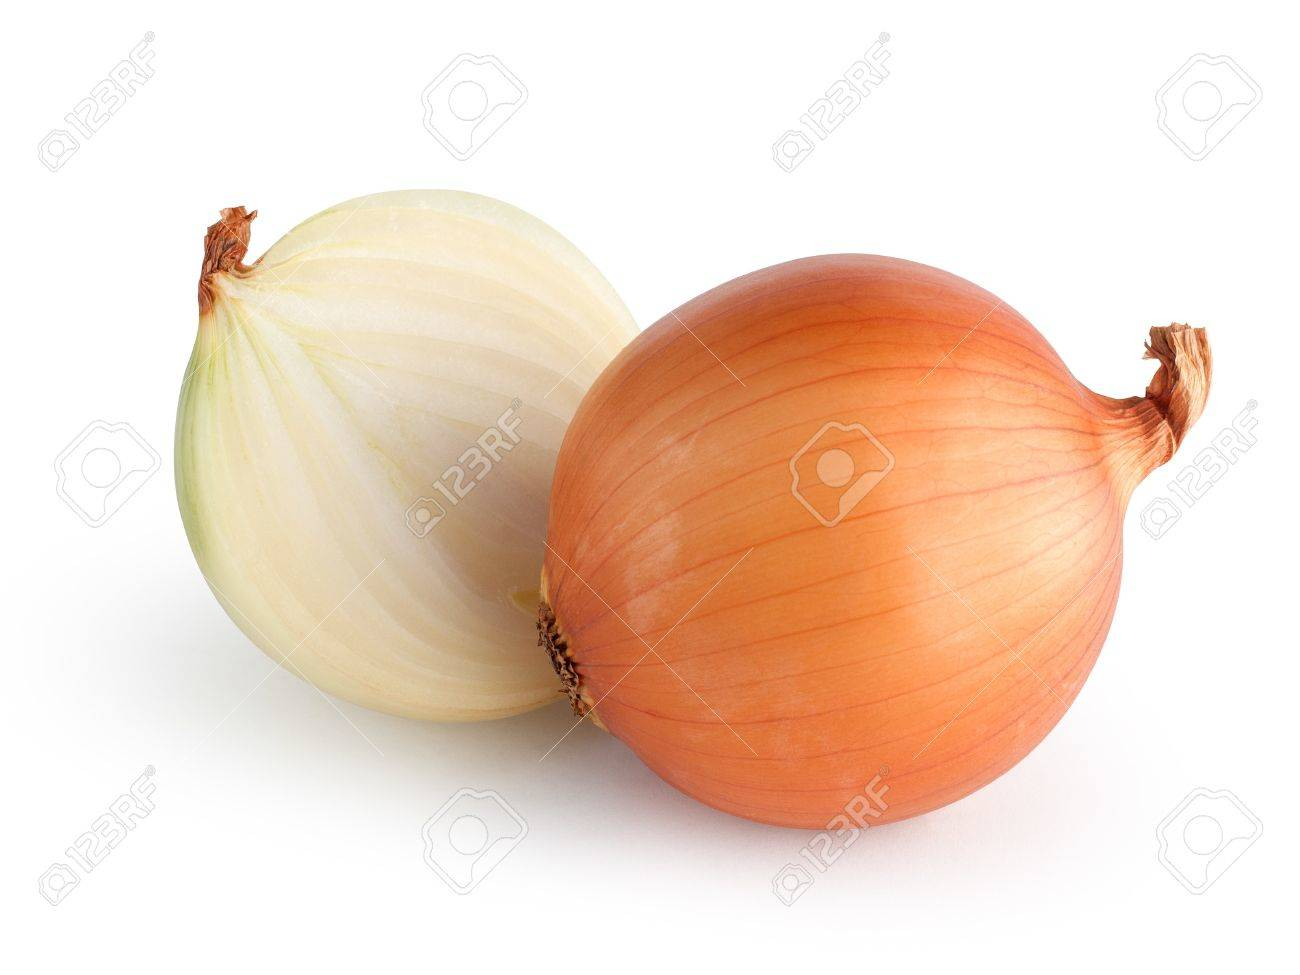 Onions isolated with clipping path - 20295244